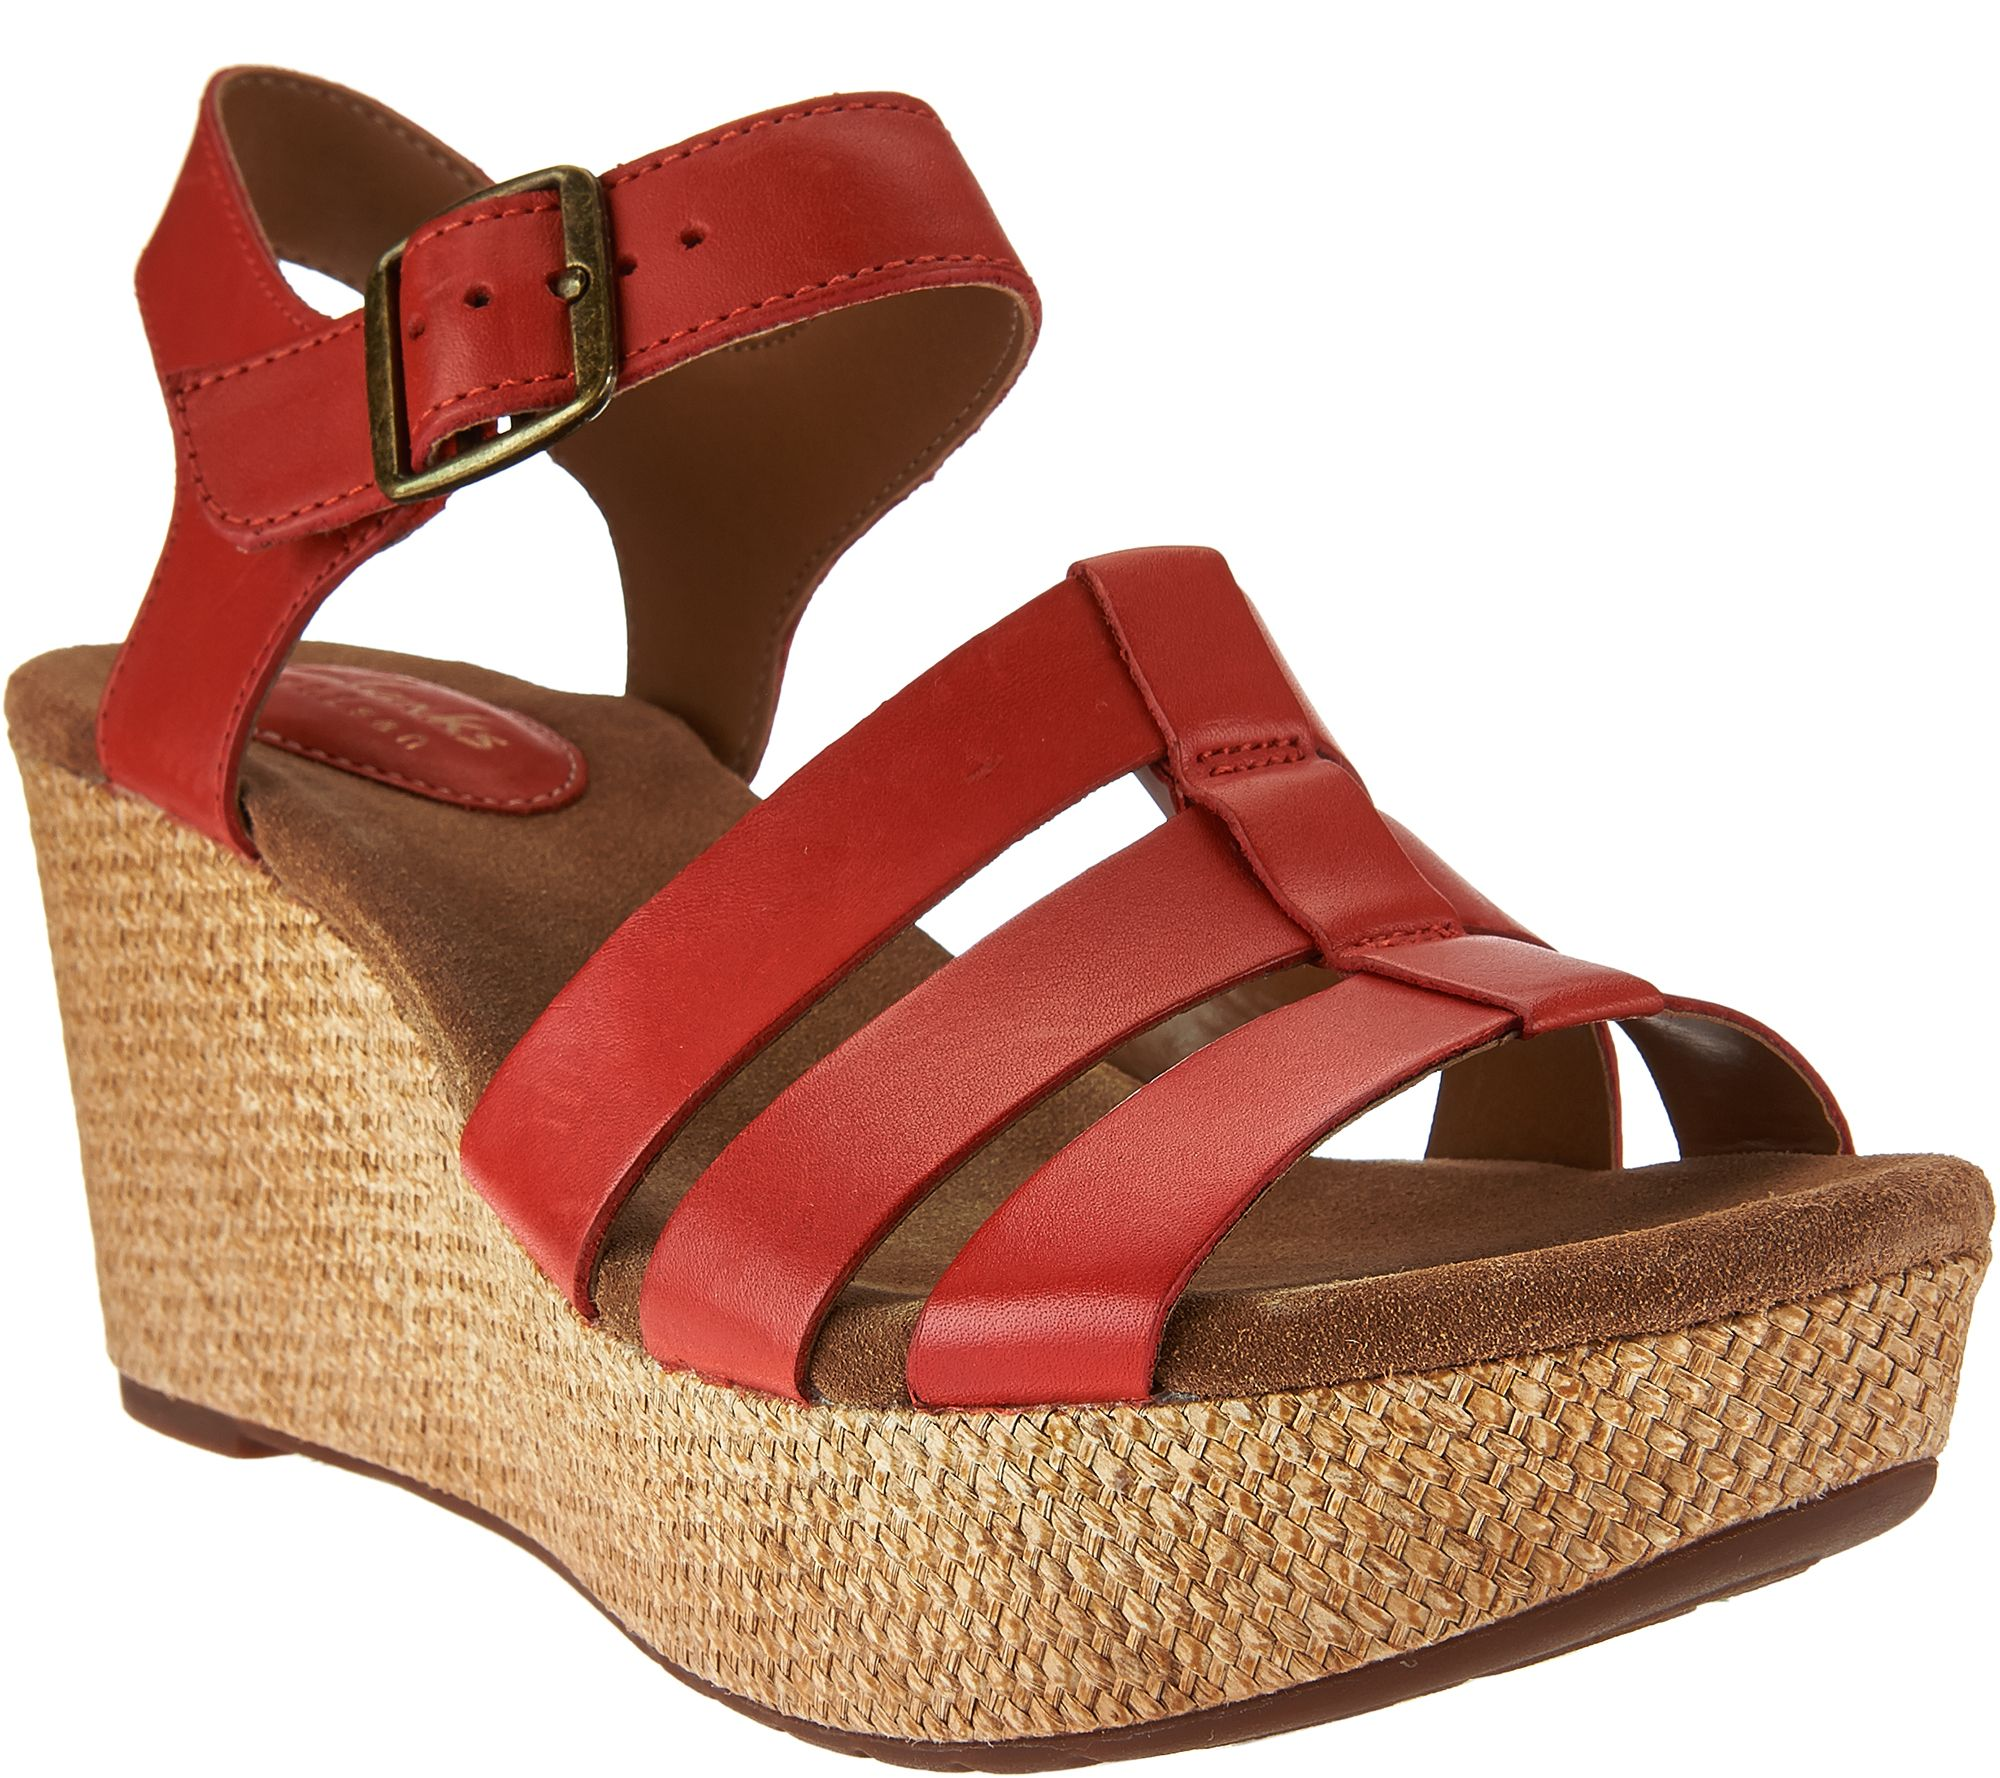 e049d502763 Clarks Artisan Leather Multi-strap Wedges - Caslynn Harp - Page 1 — QVC.com